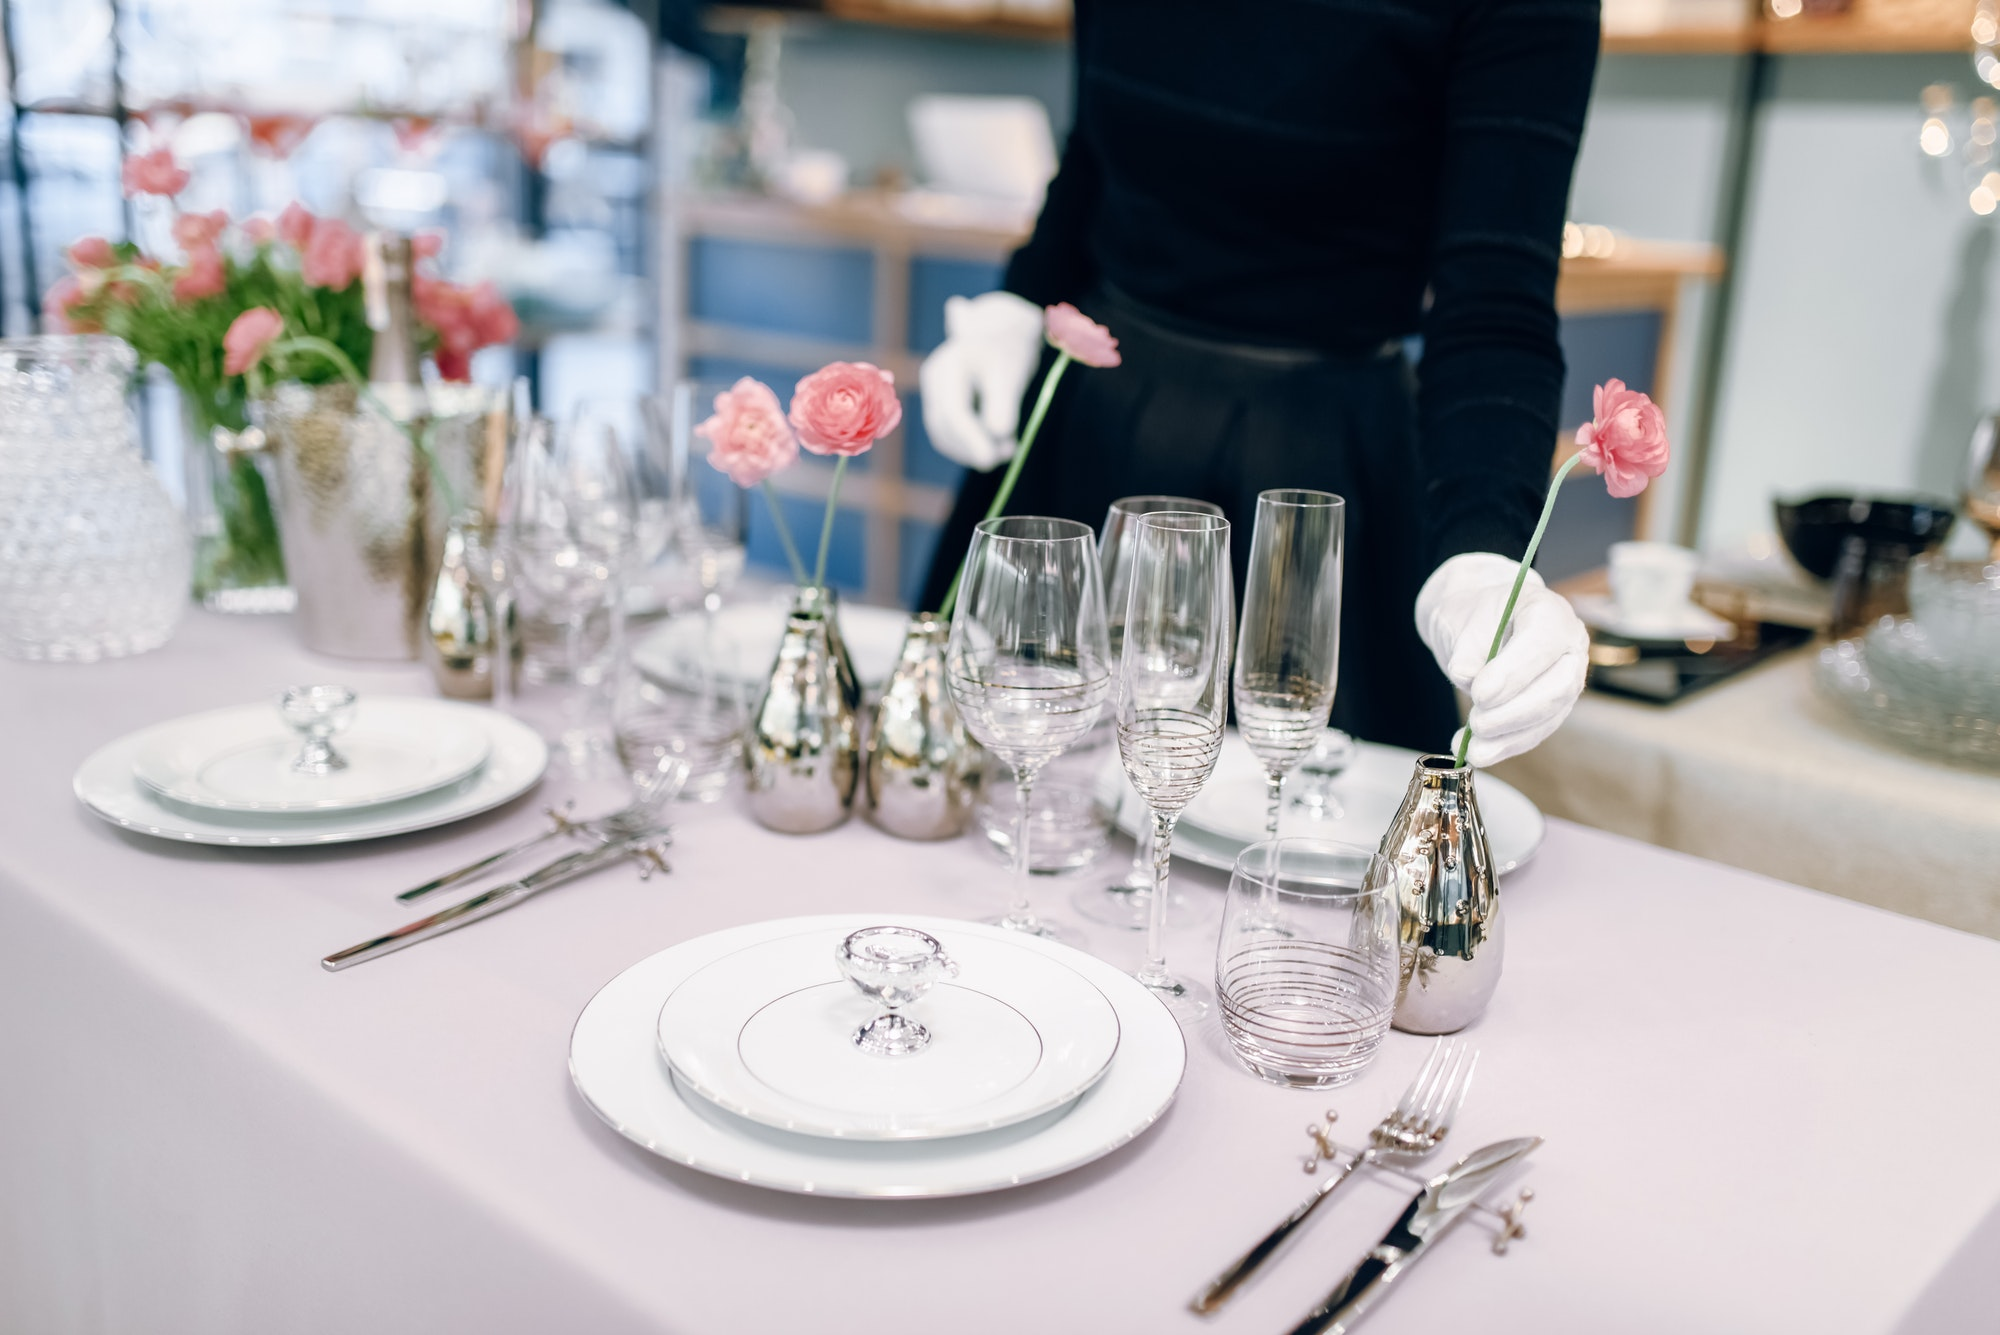 Waitress against empty tableware, table setting